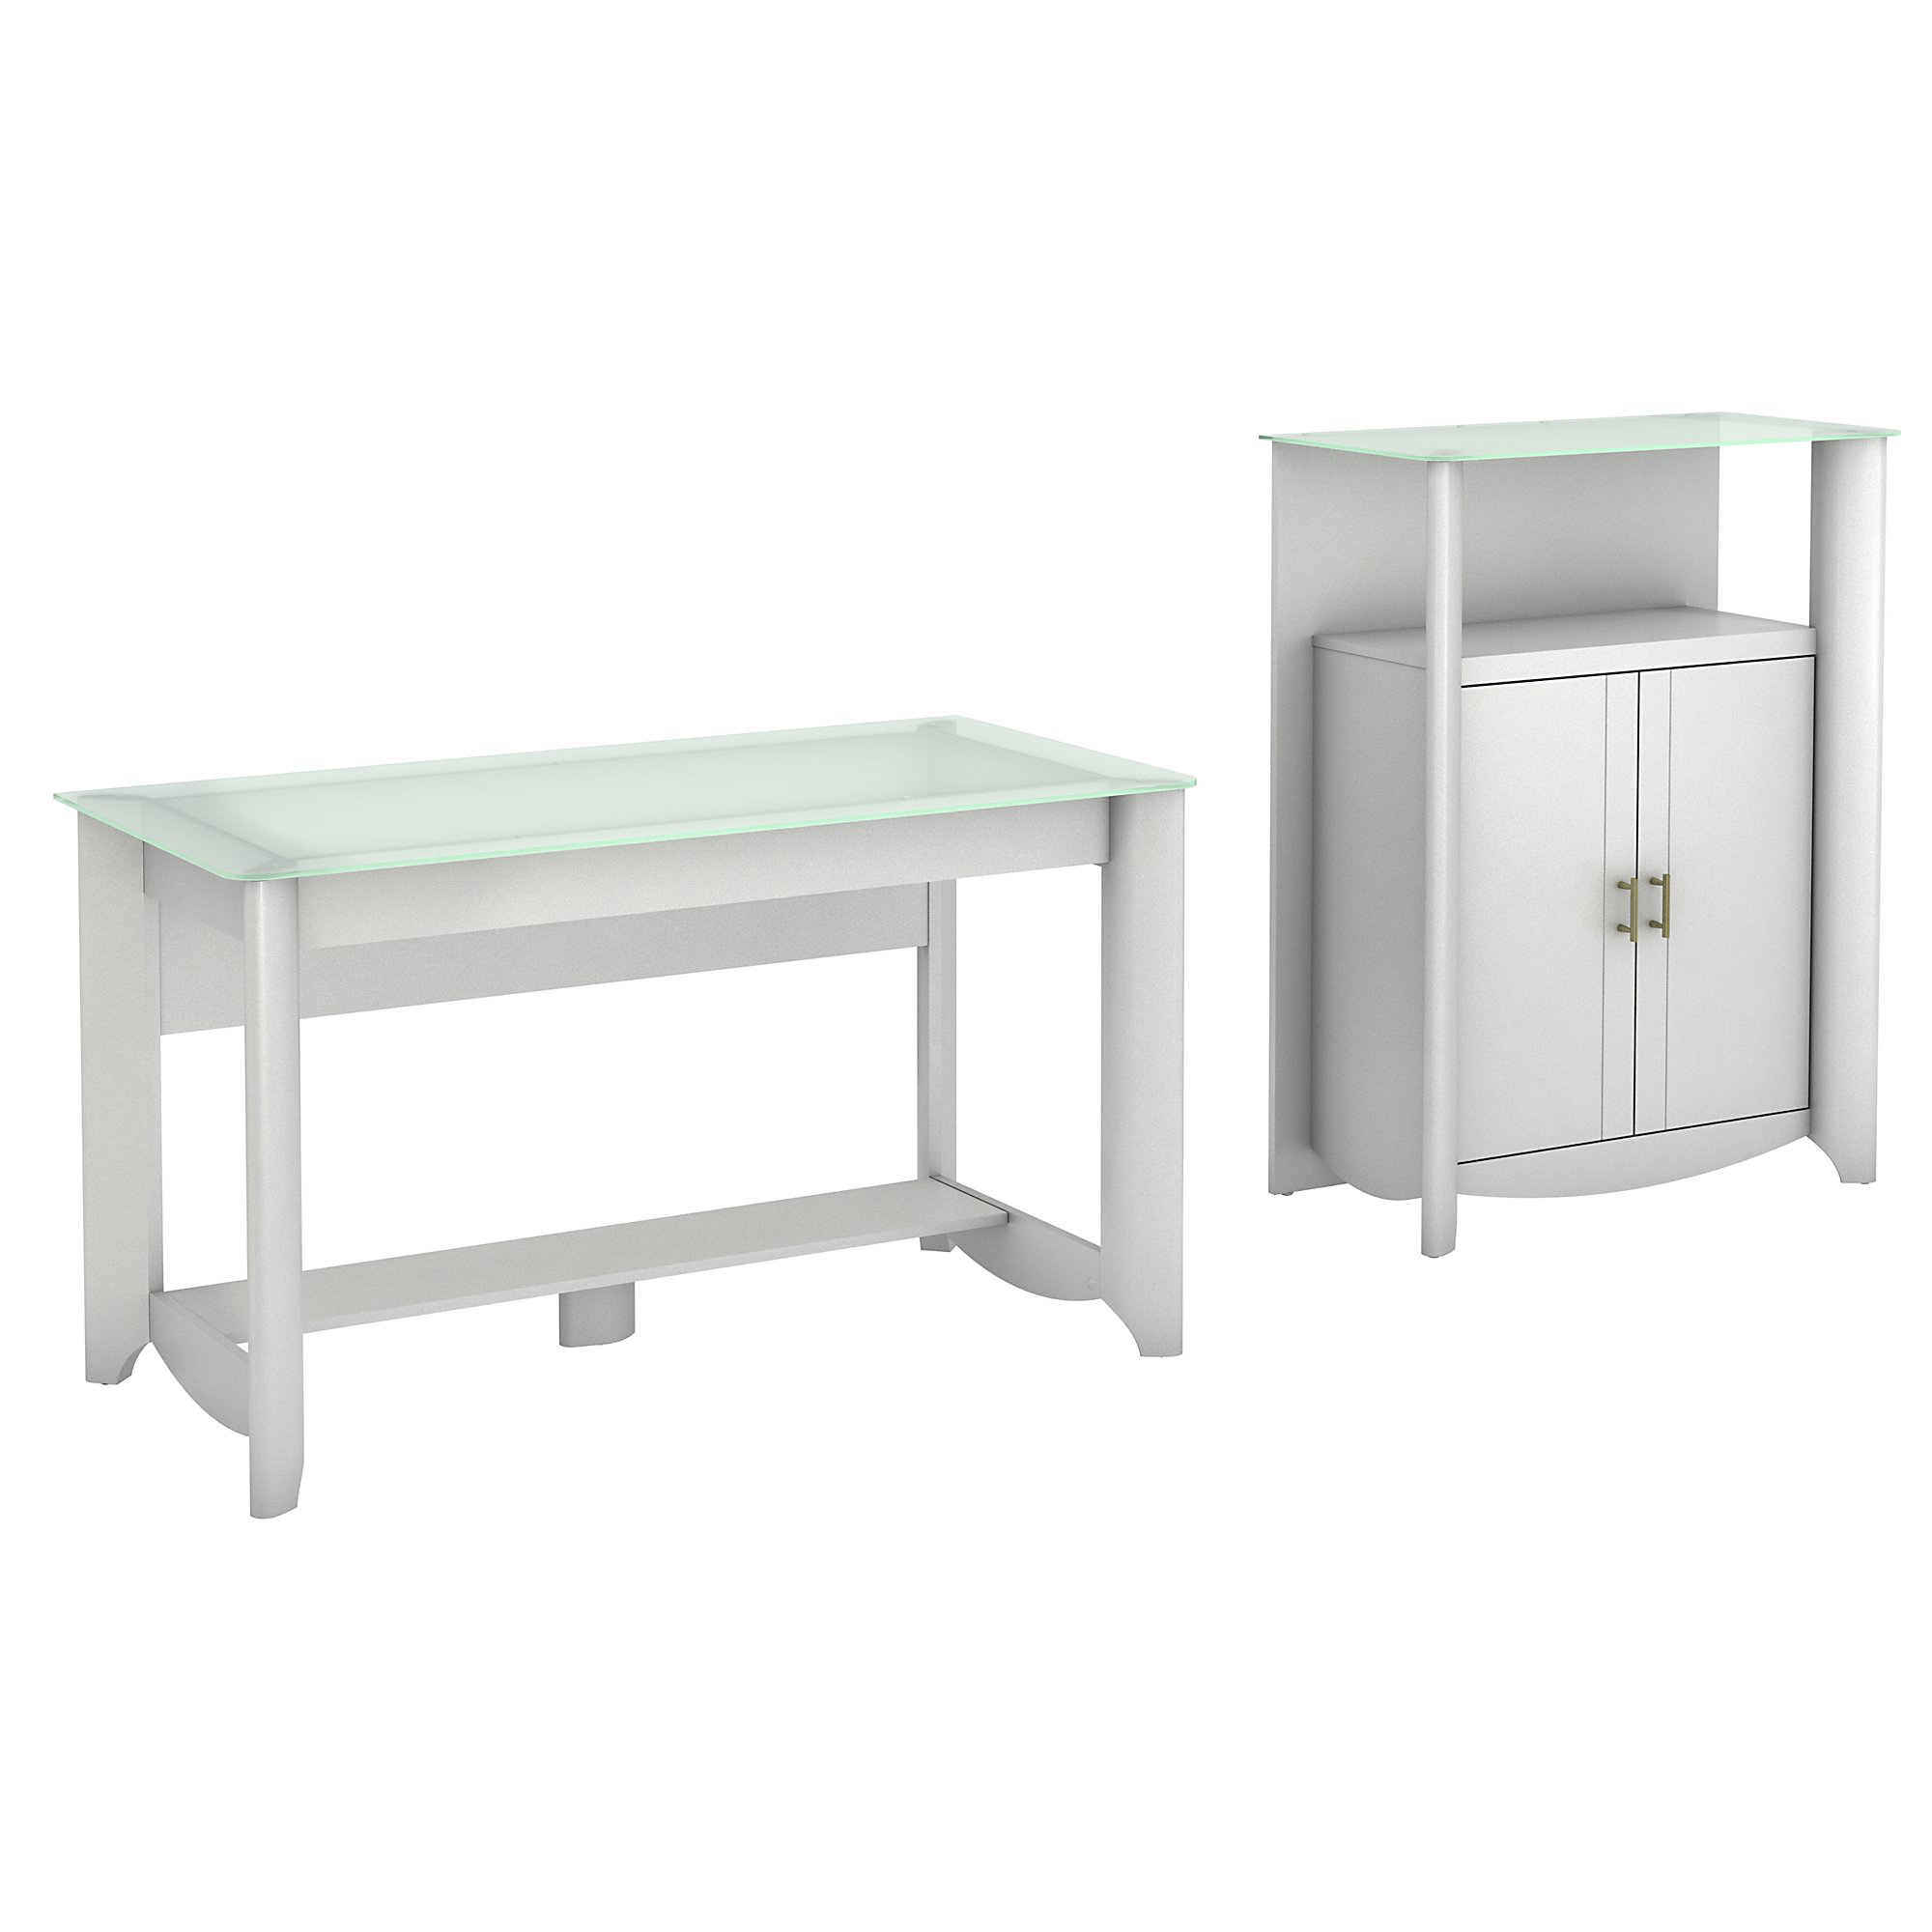 Bush Furniture Aero Writing Desk And Library Storage Cabinet With Doors, Pure White, Standard Delivery